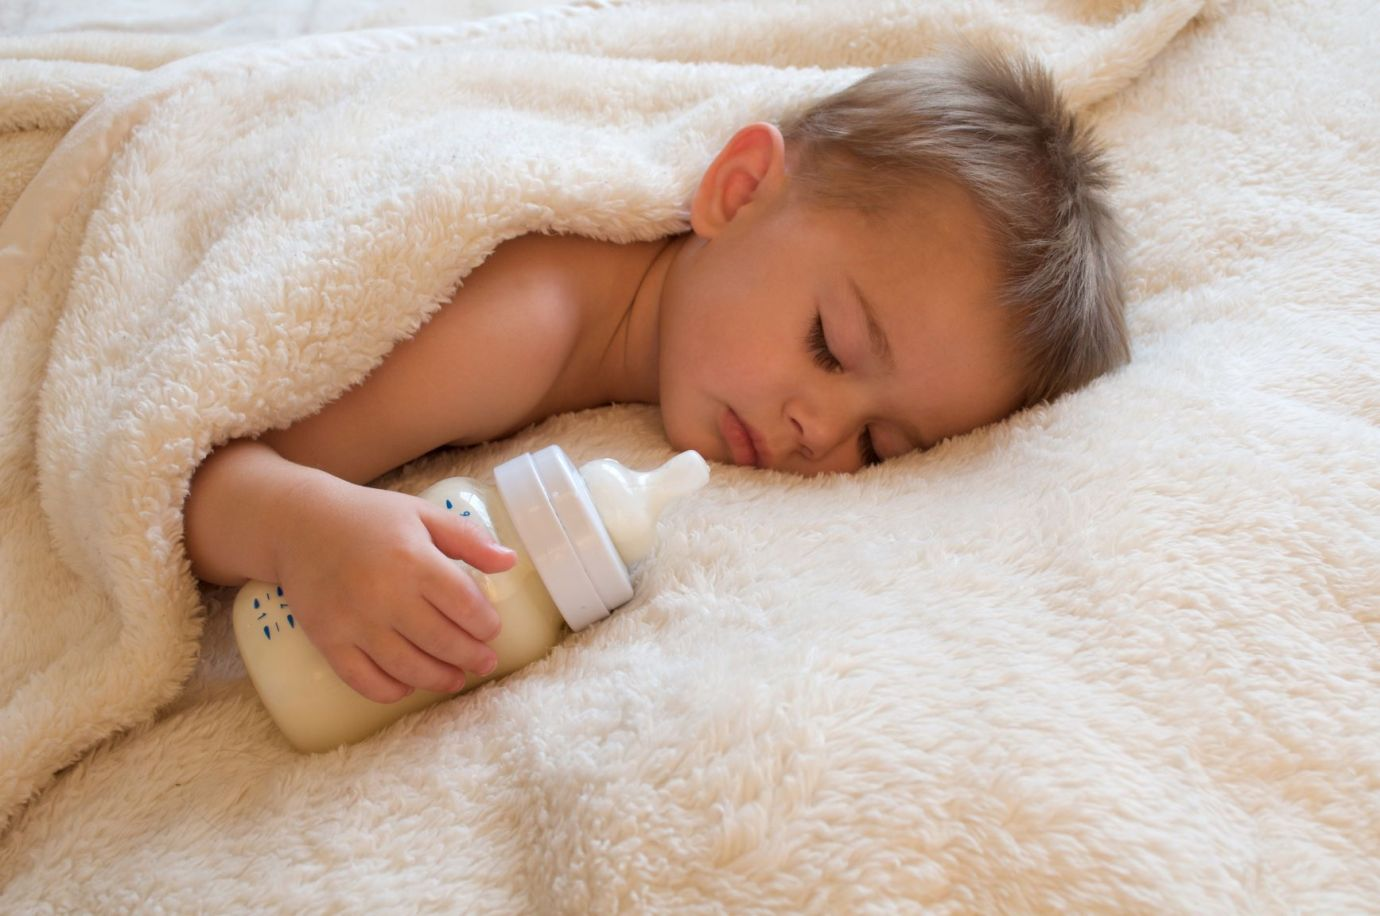 Young child sleeping in a soft blanket holding a bottle of milk.